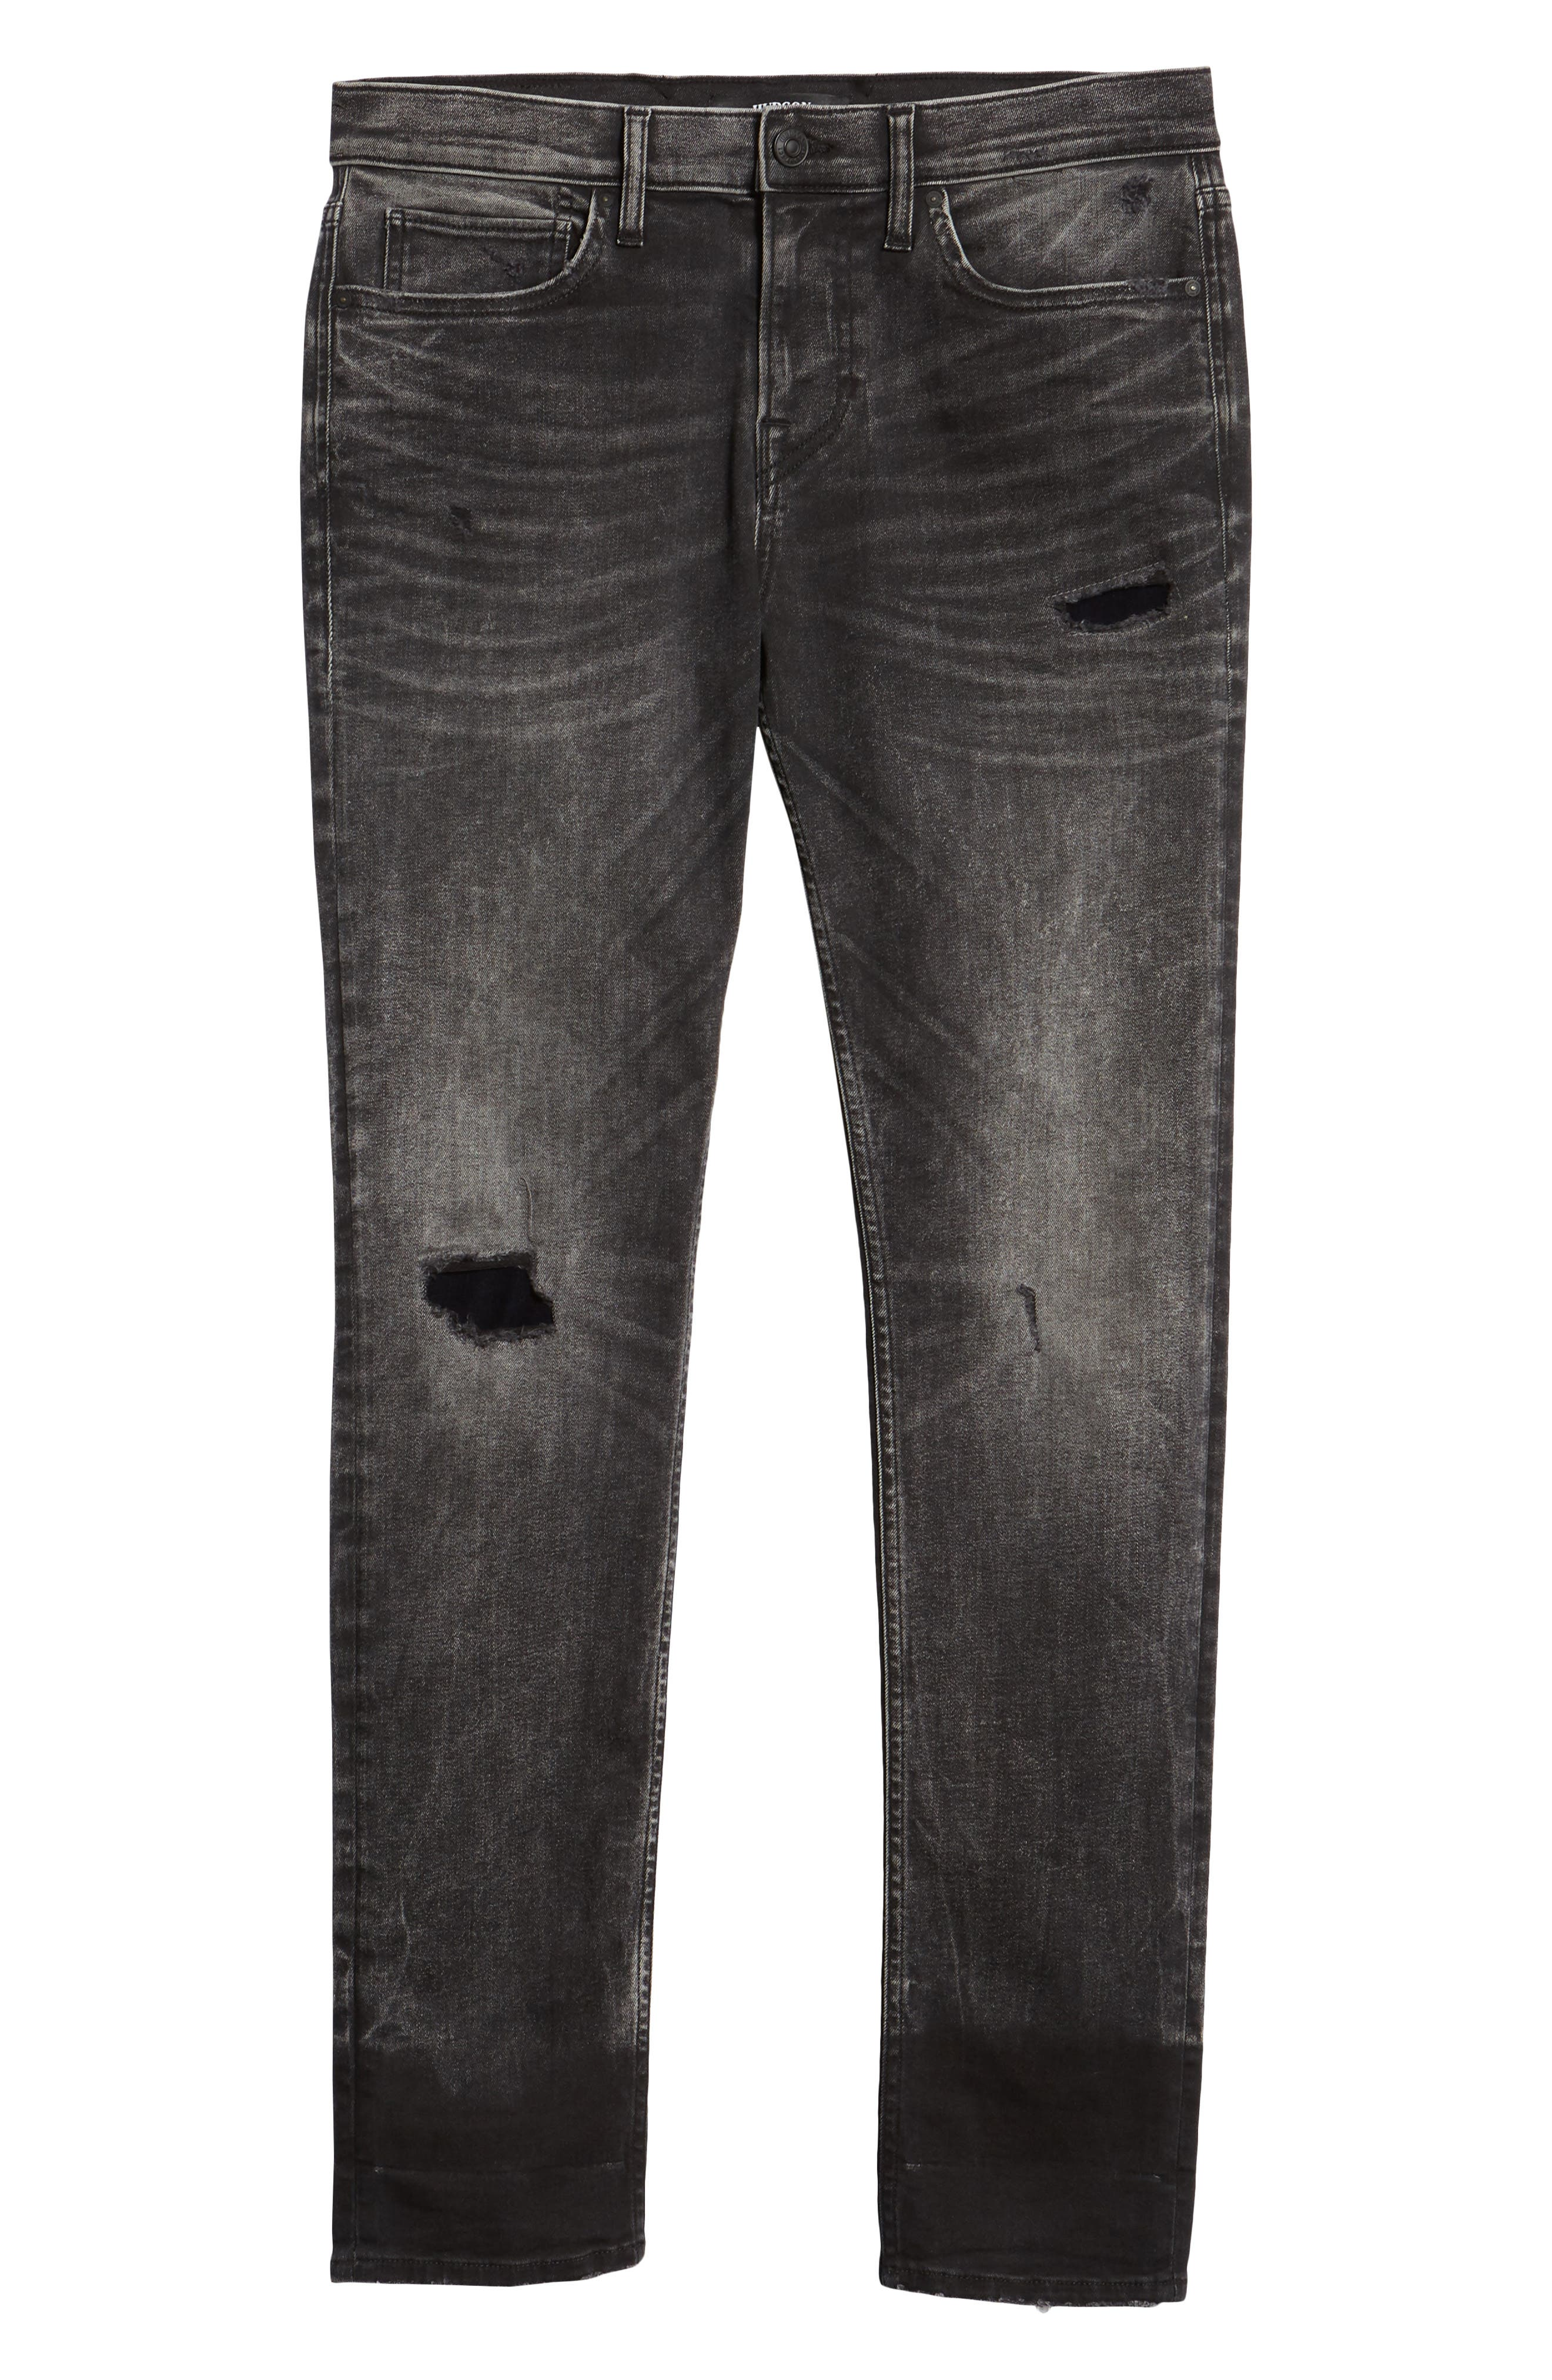 HUDSON JEANS,                             Axl Skinny Fit Jeans,                             Alternate thumbnail 6, color,                             DELUXE